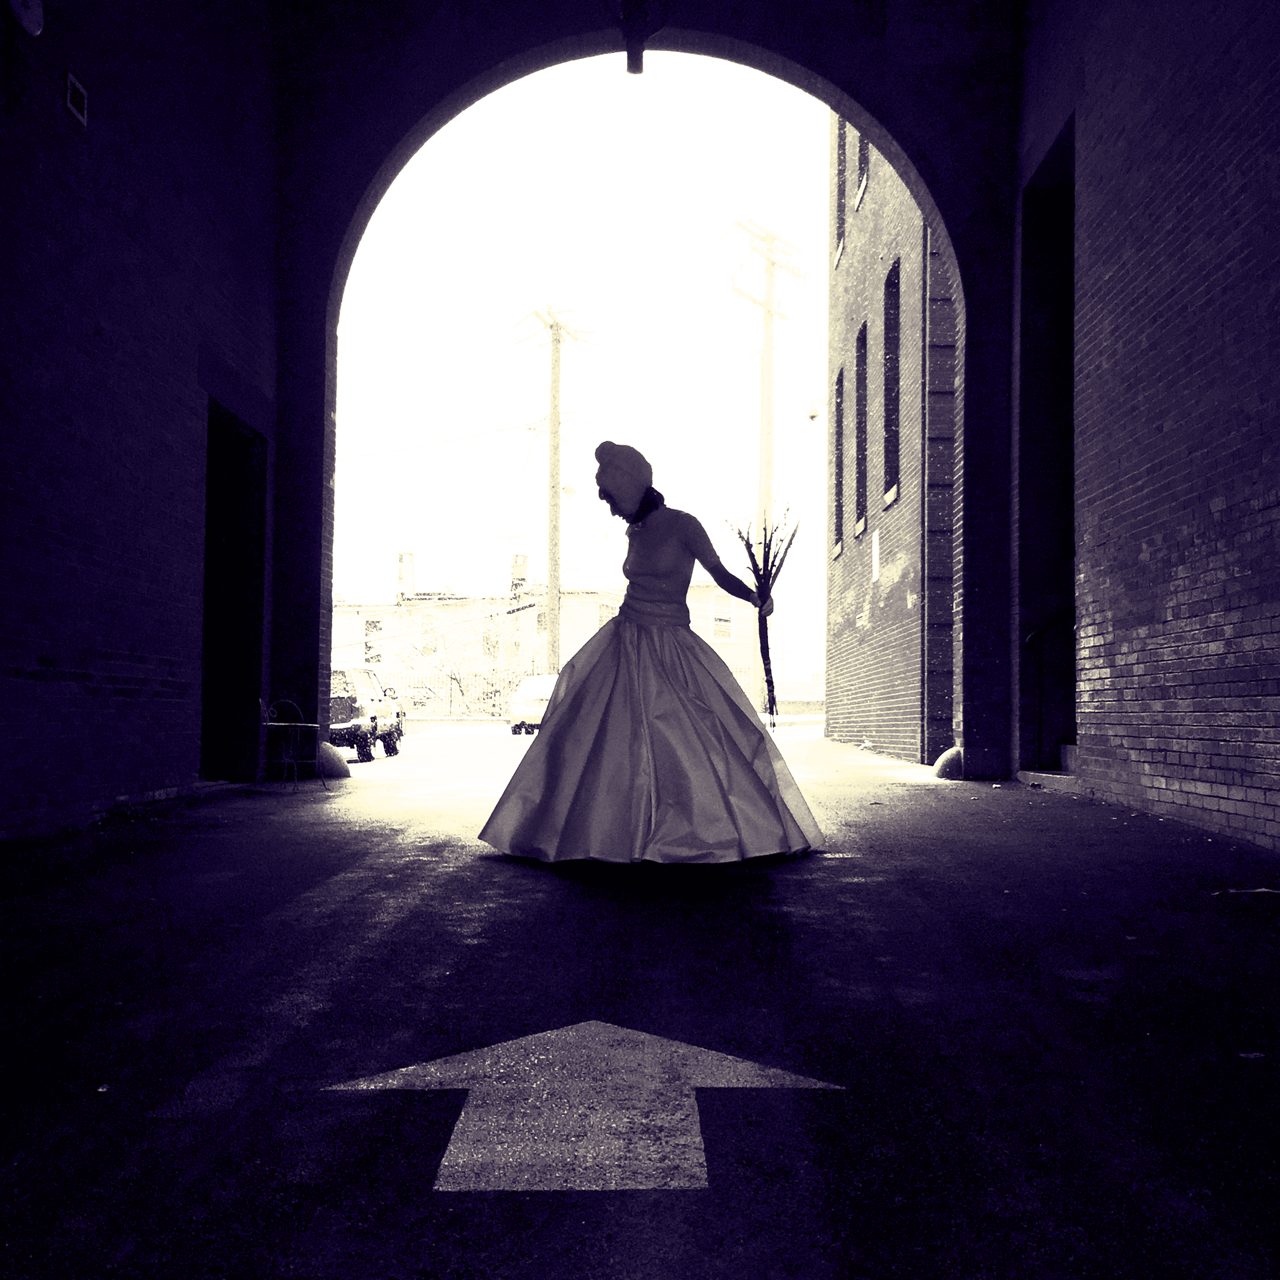 bride in silhouette in ball gown